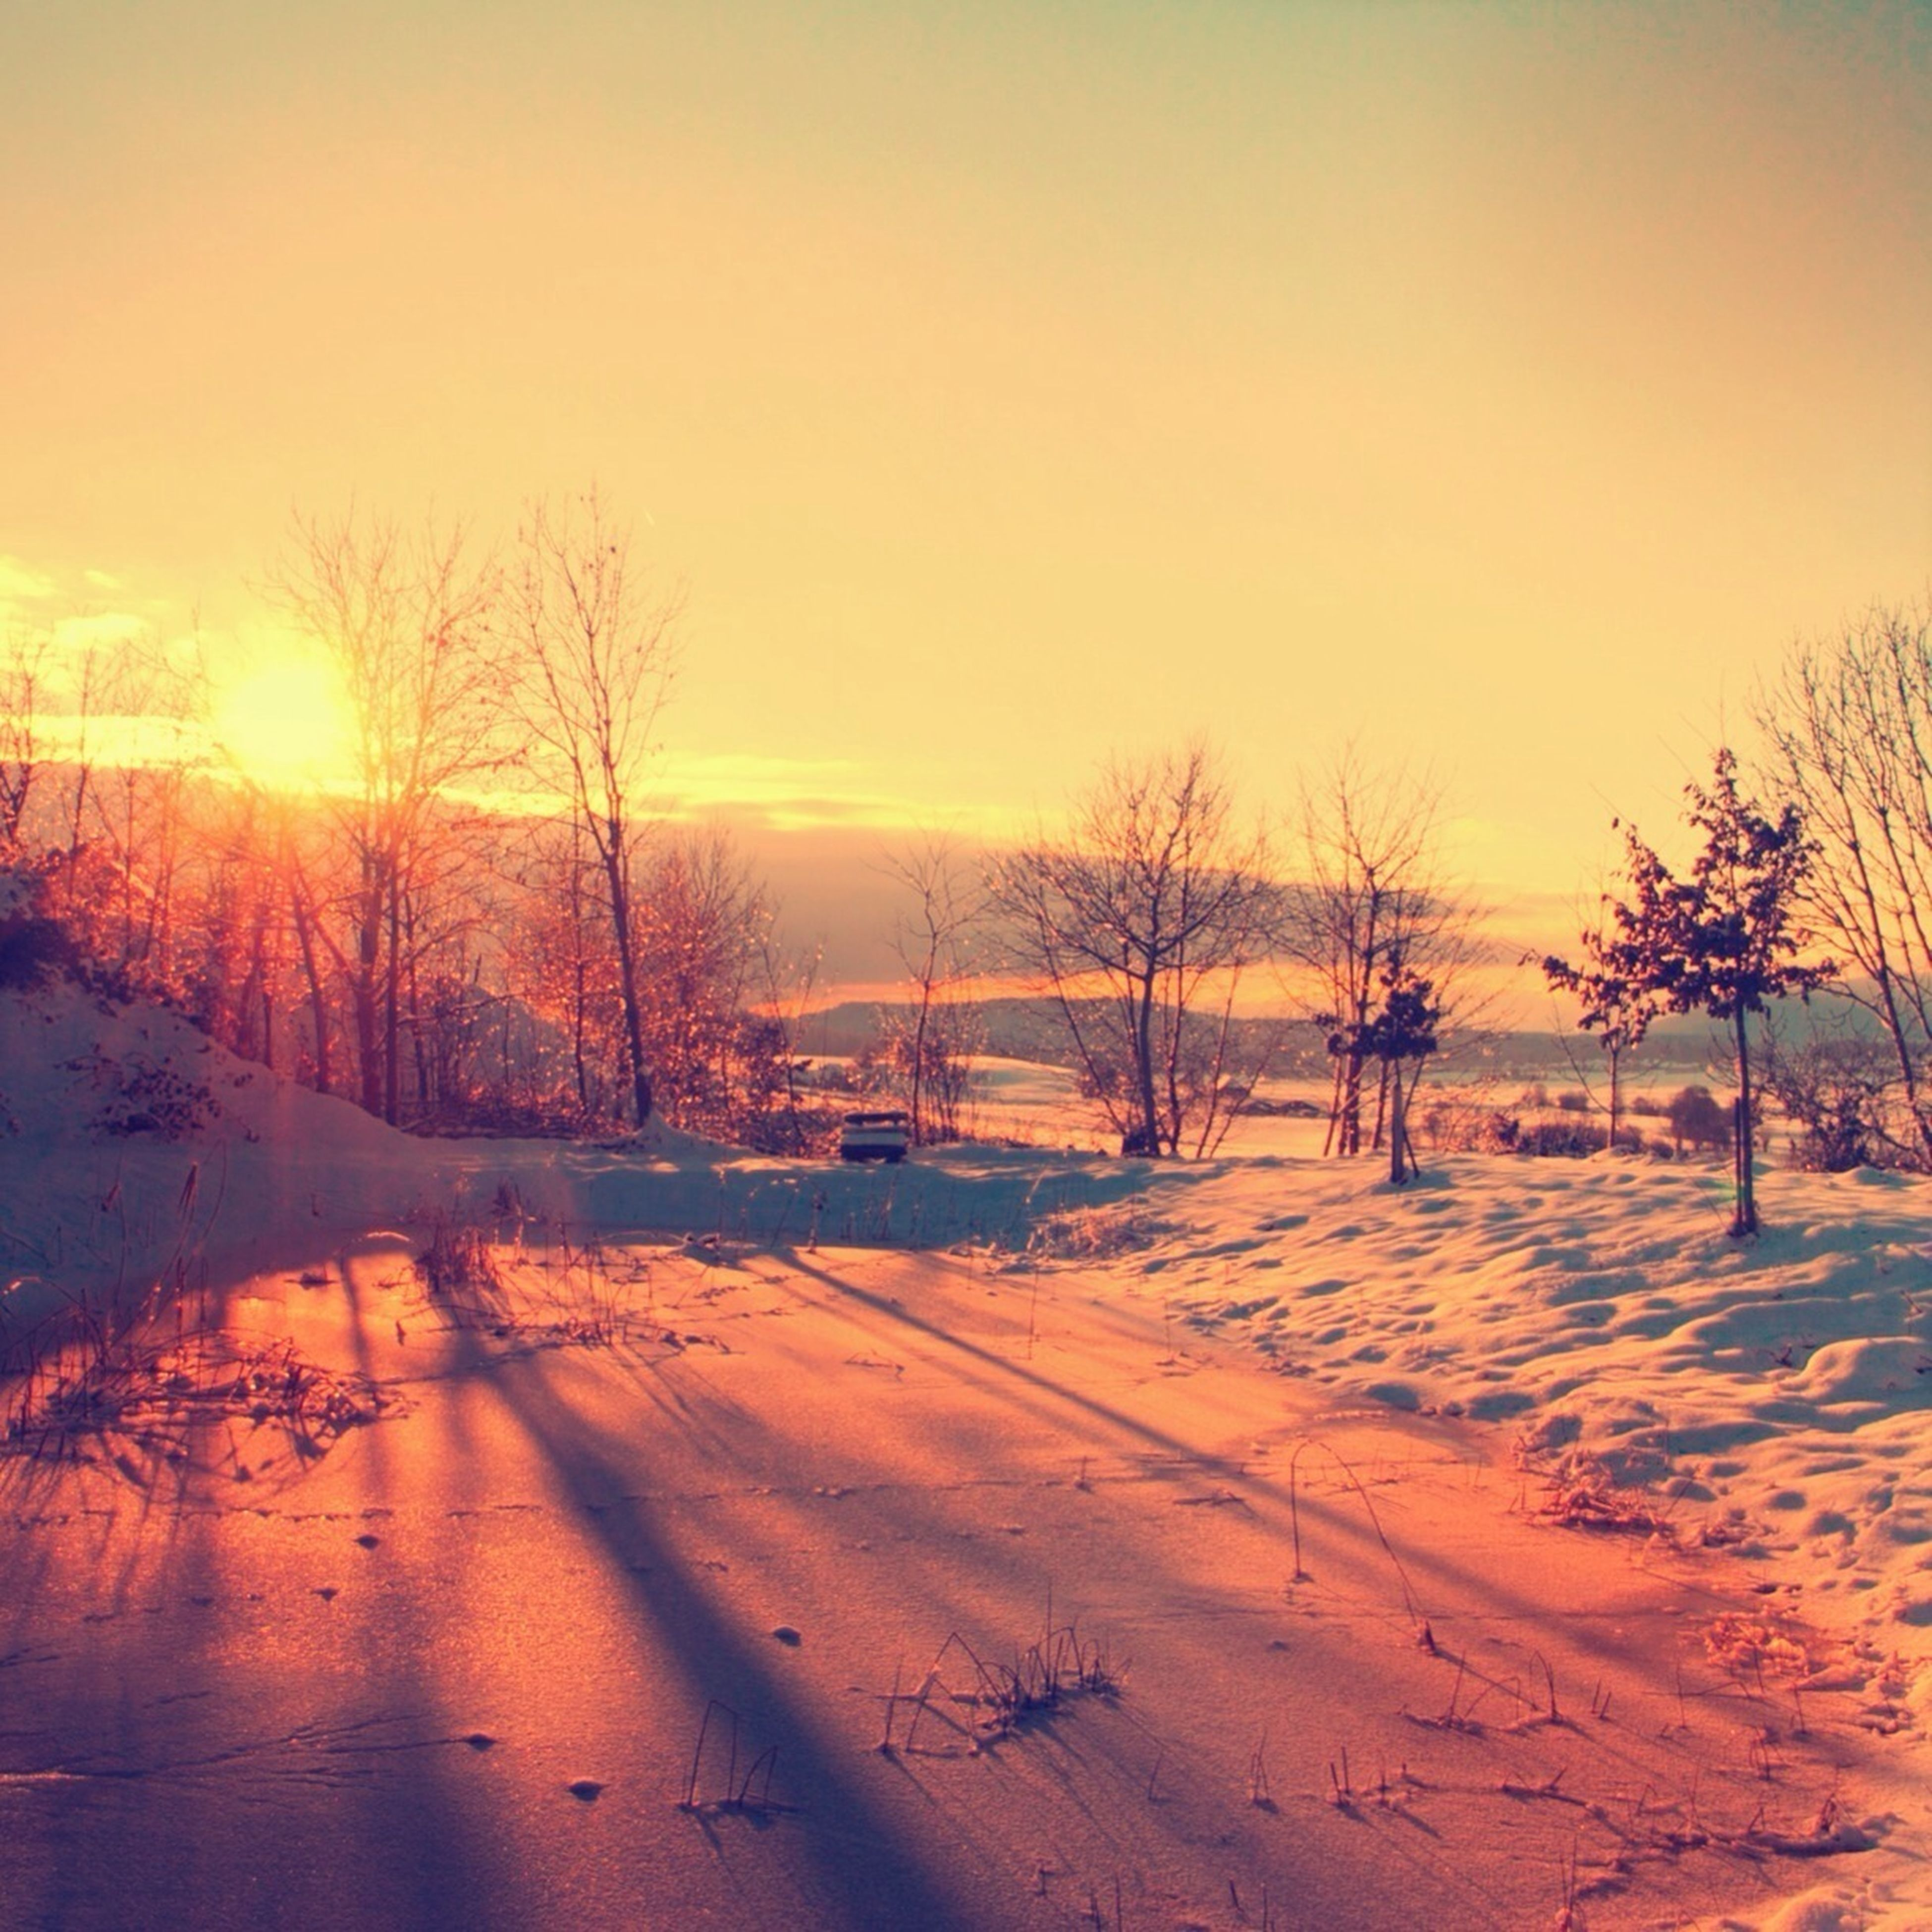 sunset, snow, winter, cold temperature, sun, tranquil scene, bare tree, tranquility, scenics, beauty in nature, tree, orange color, season, nature, landscape, clear sky, sunlight, field, idyllic, sky